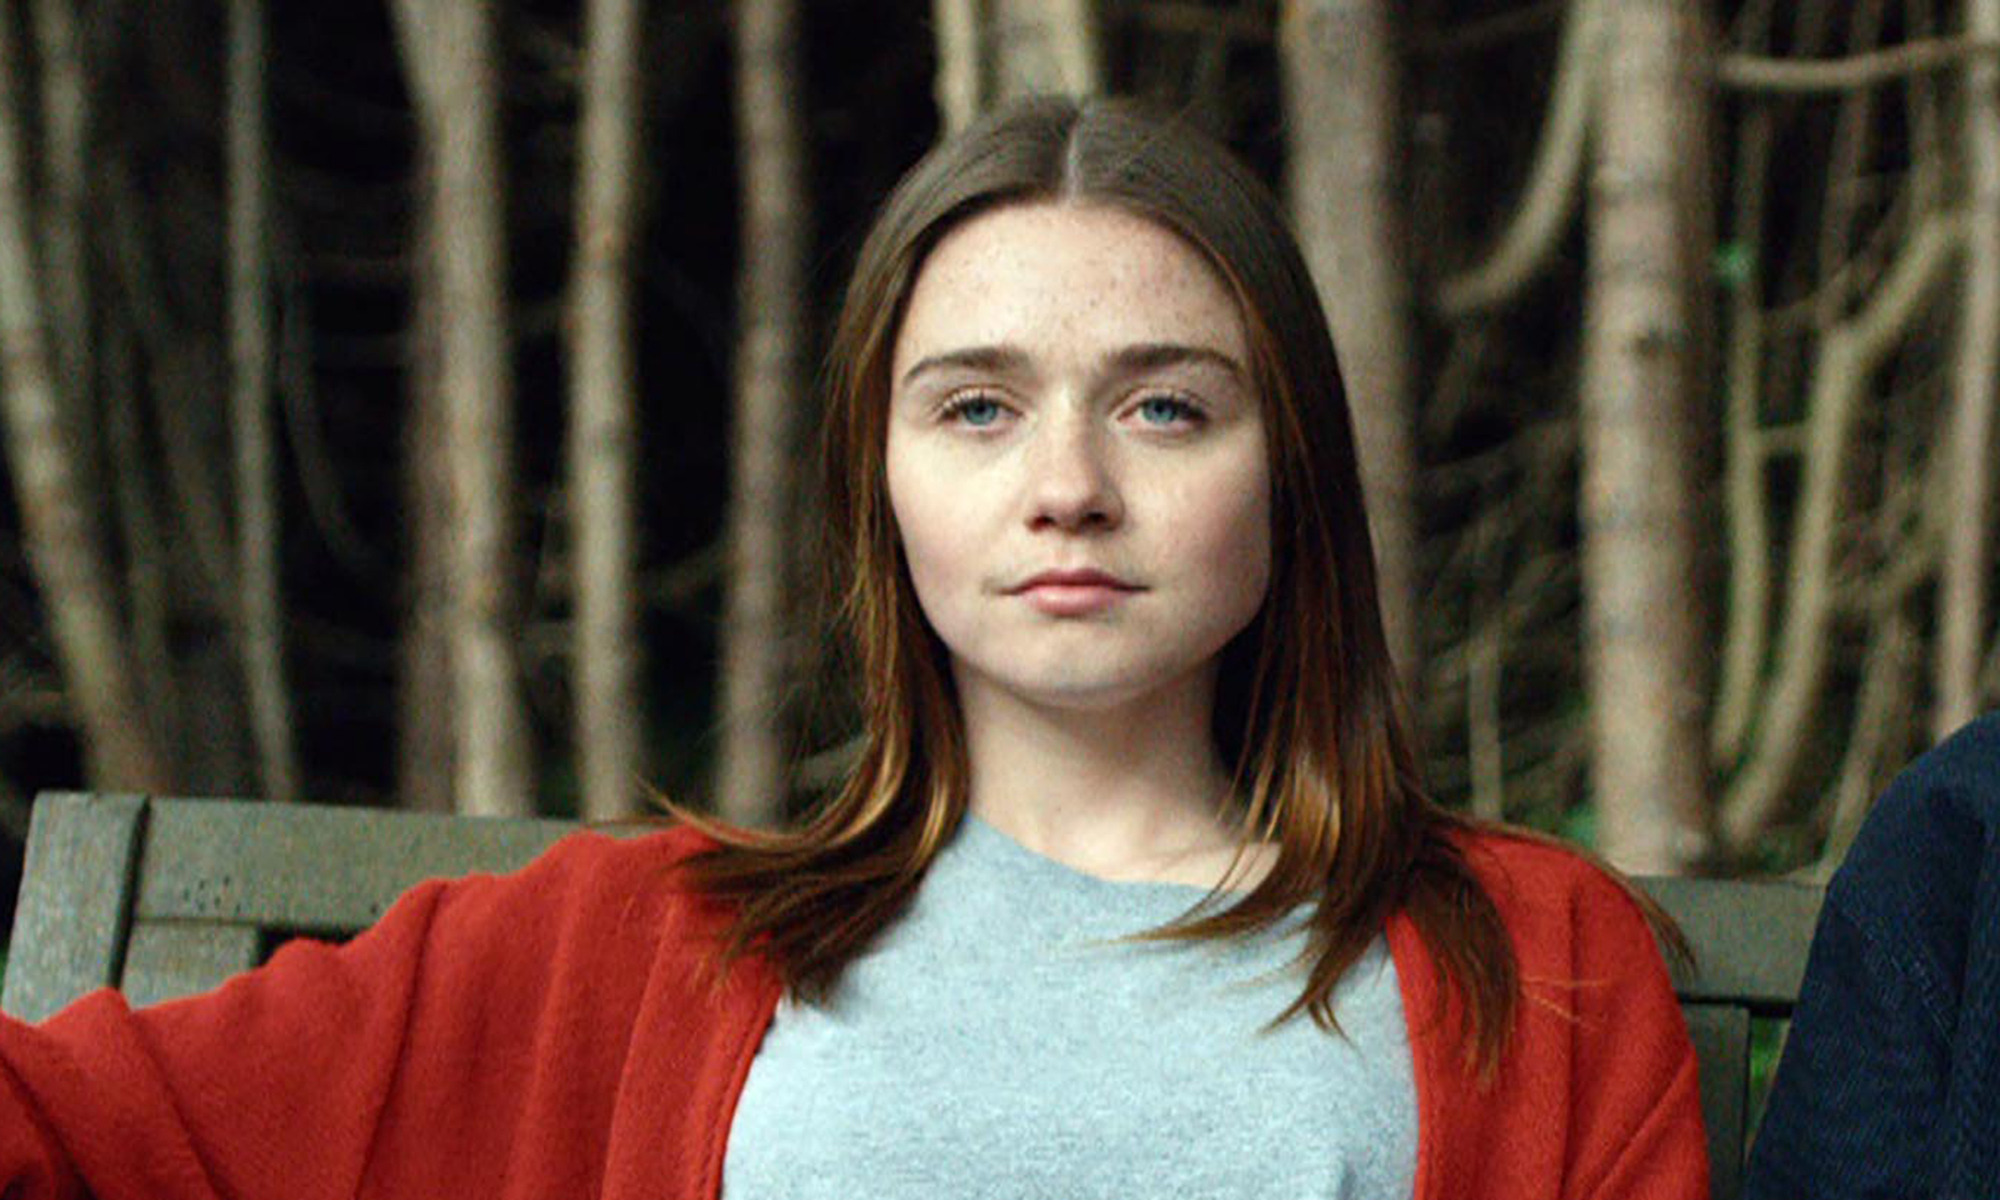 Jessica Barden, The End of the F***ing World (Channel 4, BA)